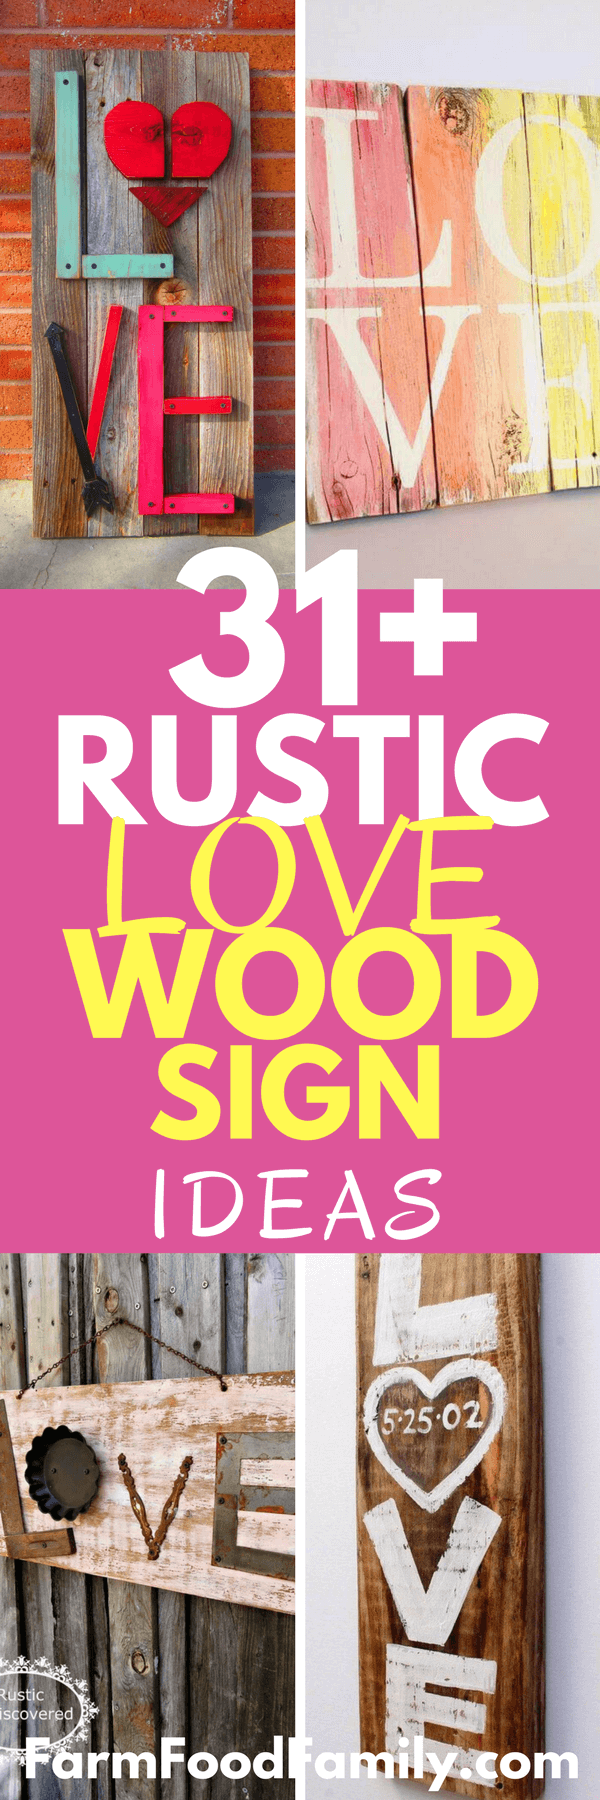 Looking for a romantic idea for your house? Check out 31 Sweet and Rustic Wooden Love Signs #homedecor #rustic #lovesigns #farmfoodfamily